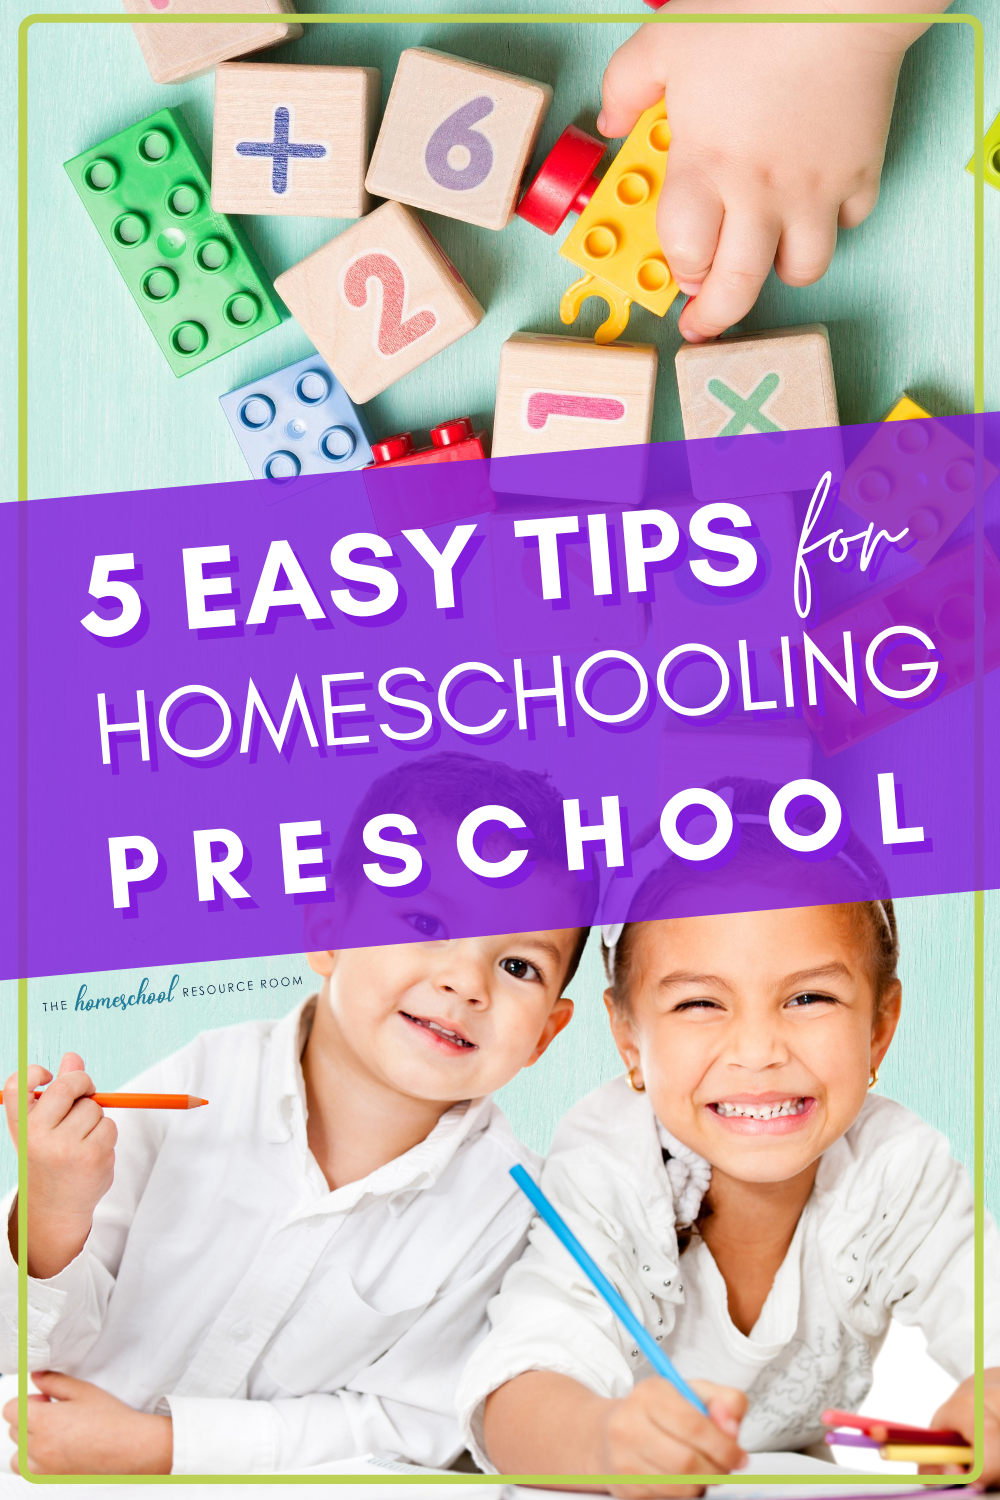 Homeschooling your preschool child can be daunting, but it really can be fun for both you and your child! Read on for 5 tips to get started on the right foot! #preschool #homeschooling #homeschooltips